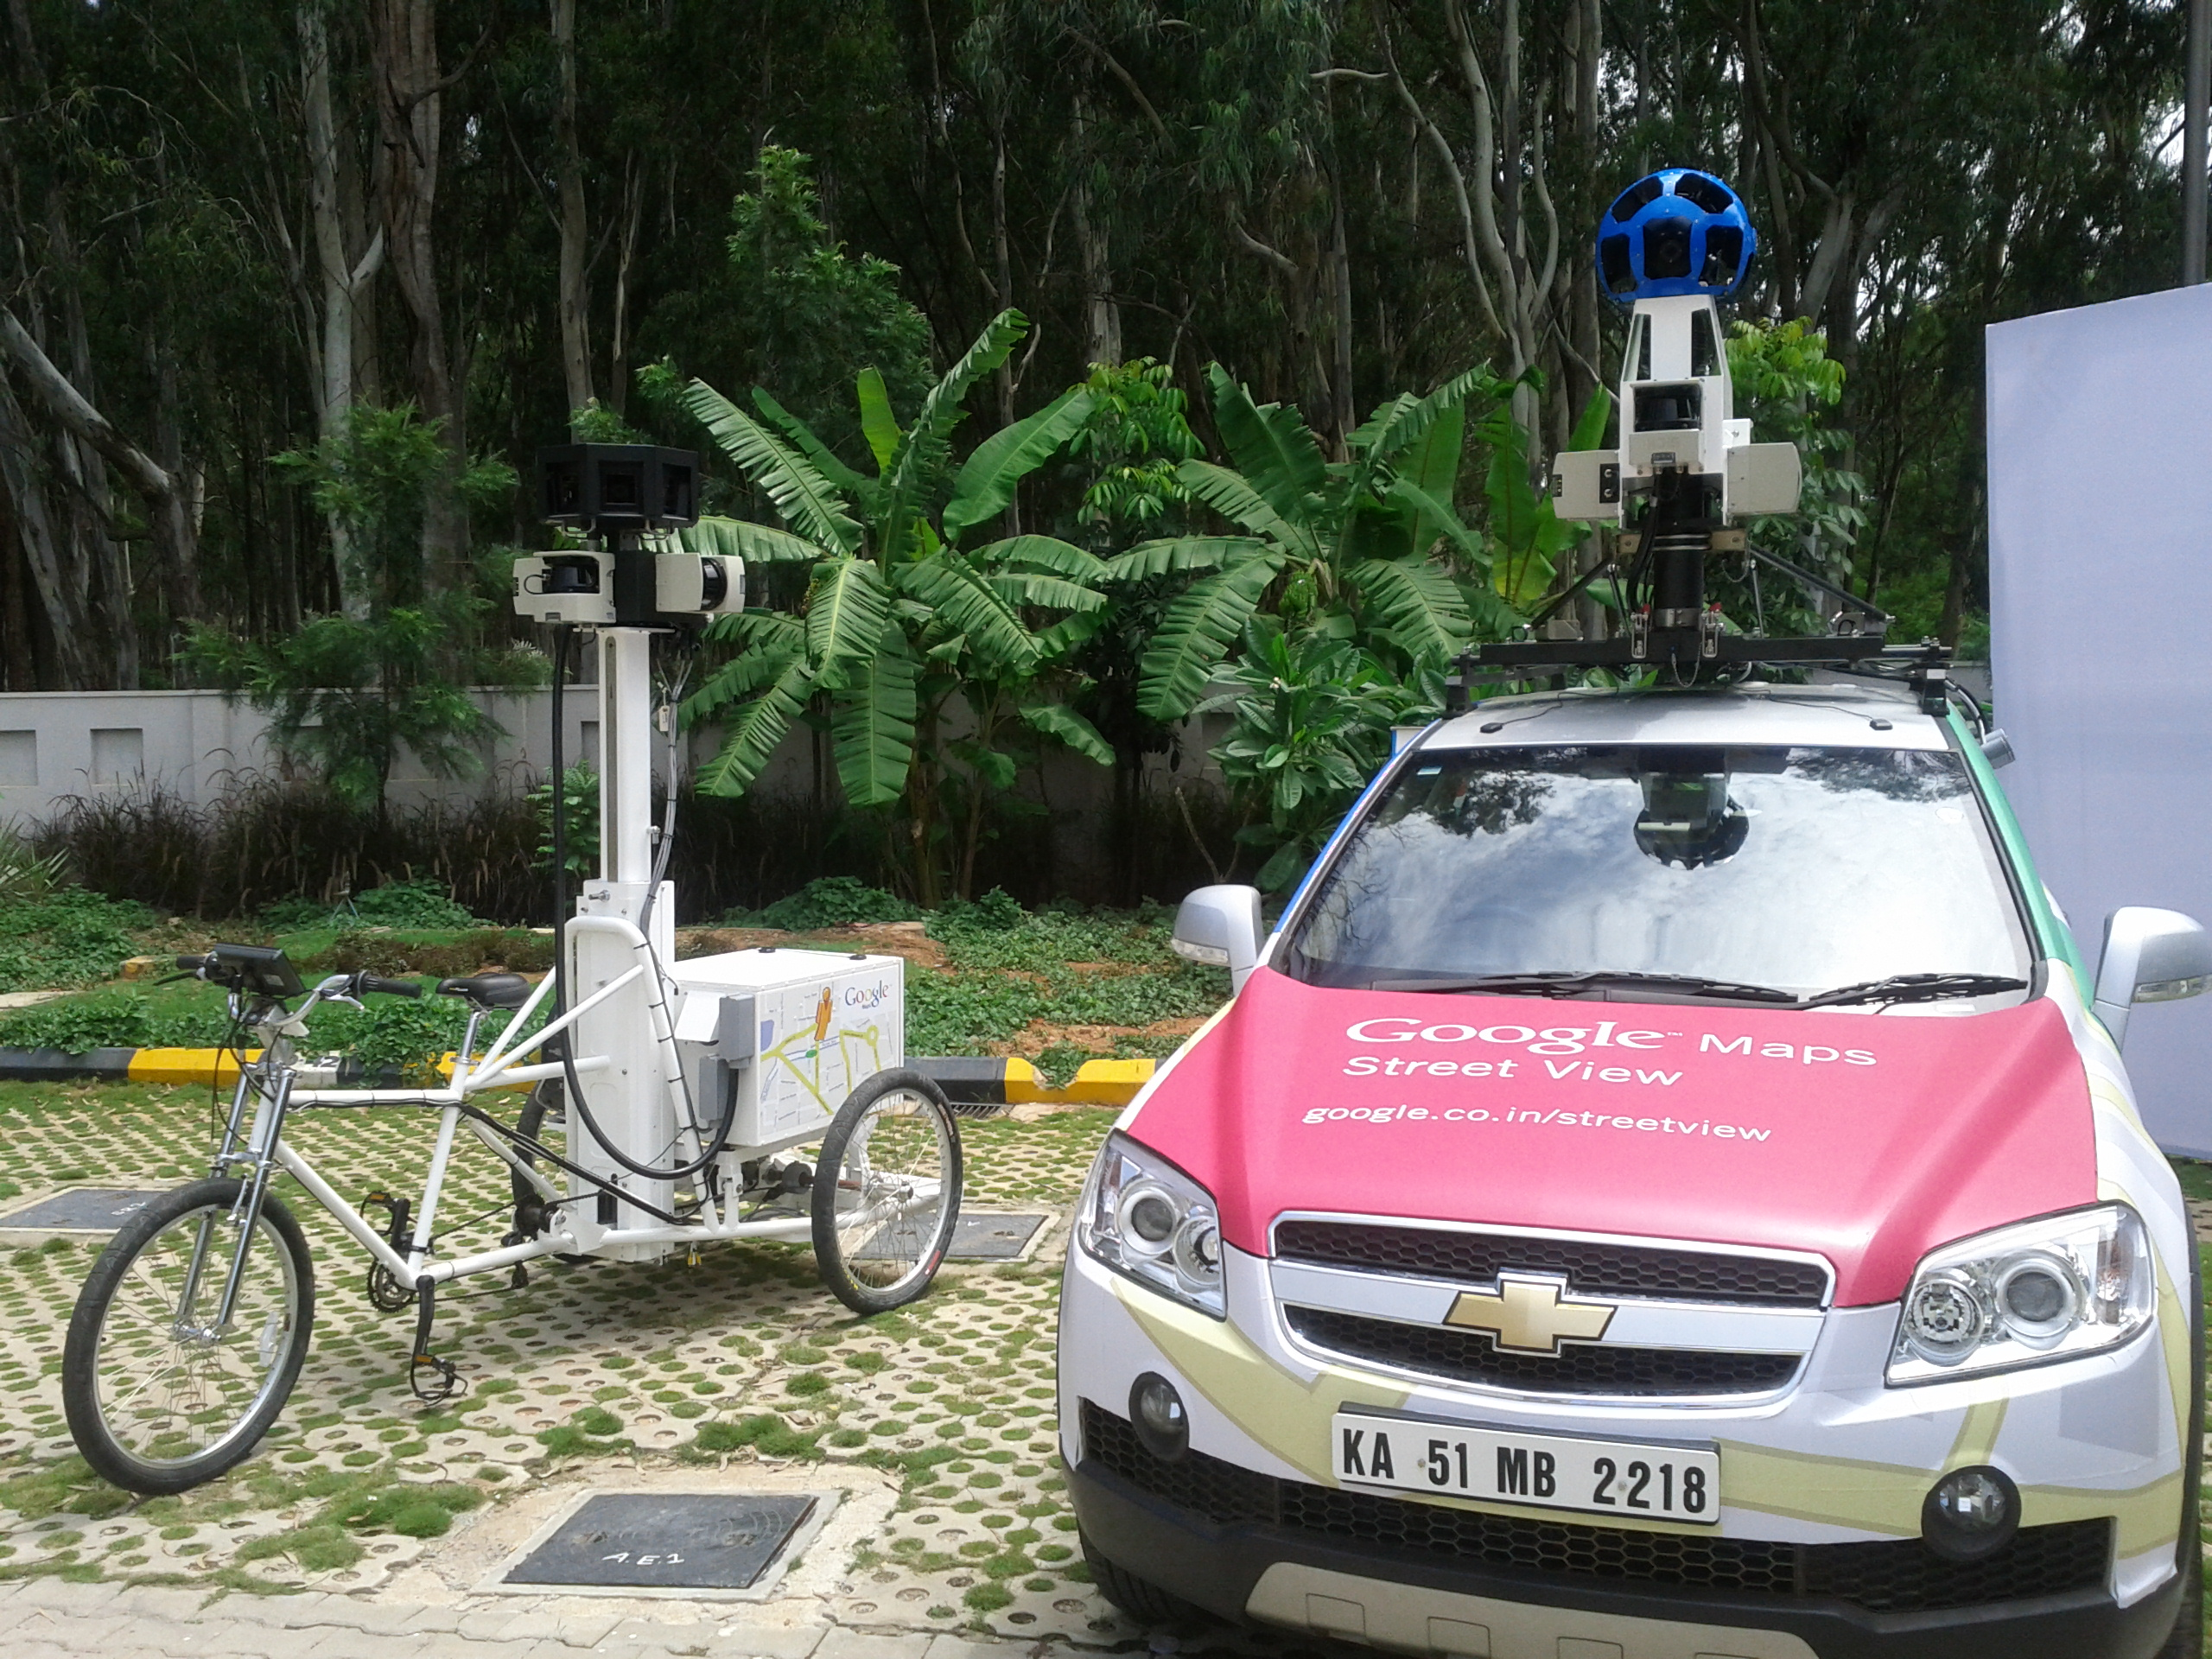 google mumbai office india. google halts street view capture in india over police concerns updated mumbai office e